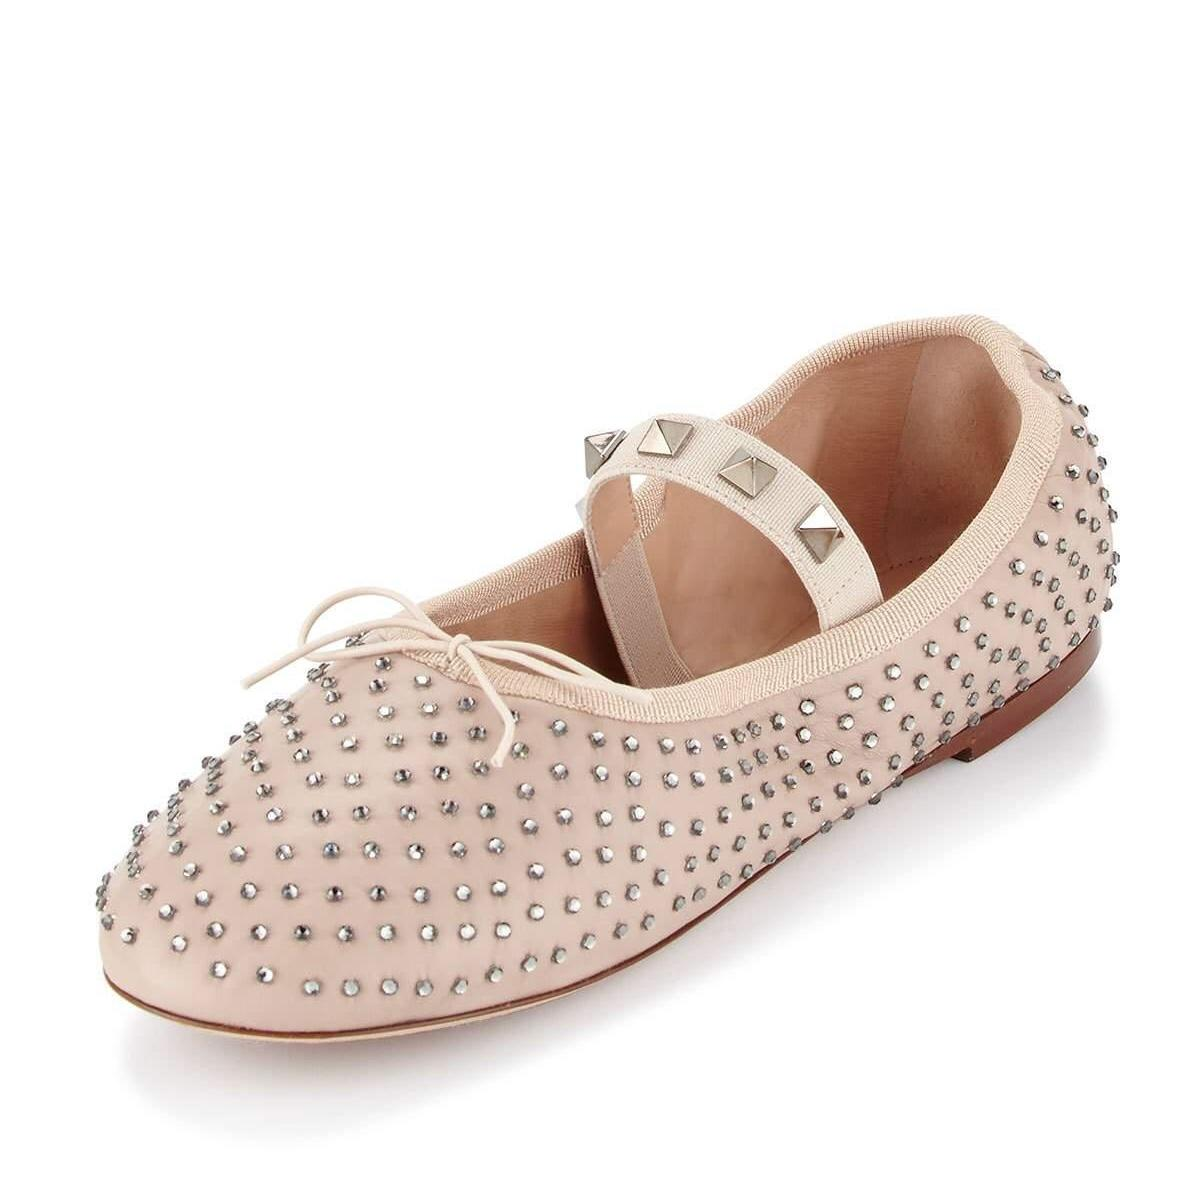 Valentino Nude Rockstud Crystal Leather Ballet Flats Size EU 39 (Approx. US 9) Regular (M, B)